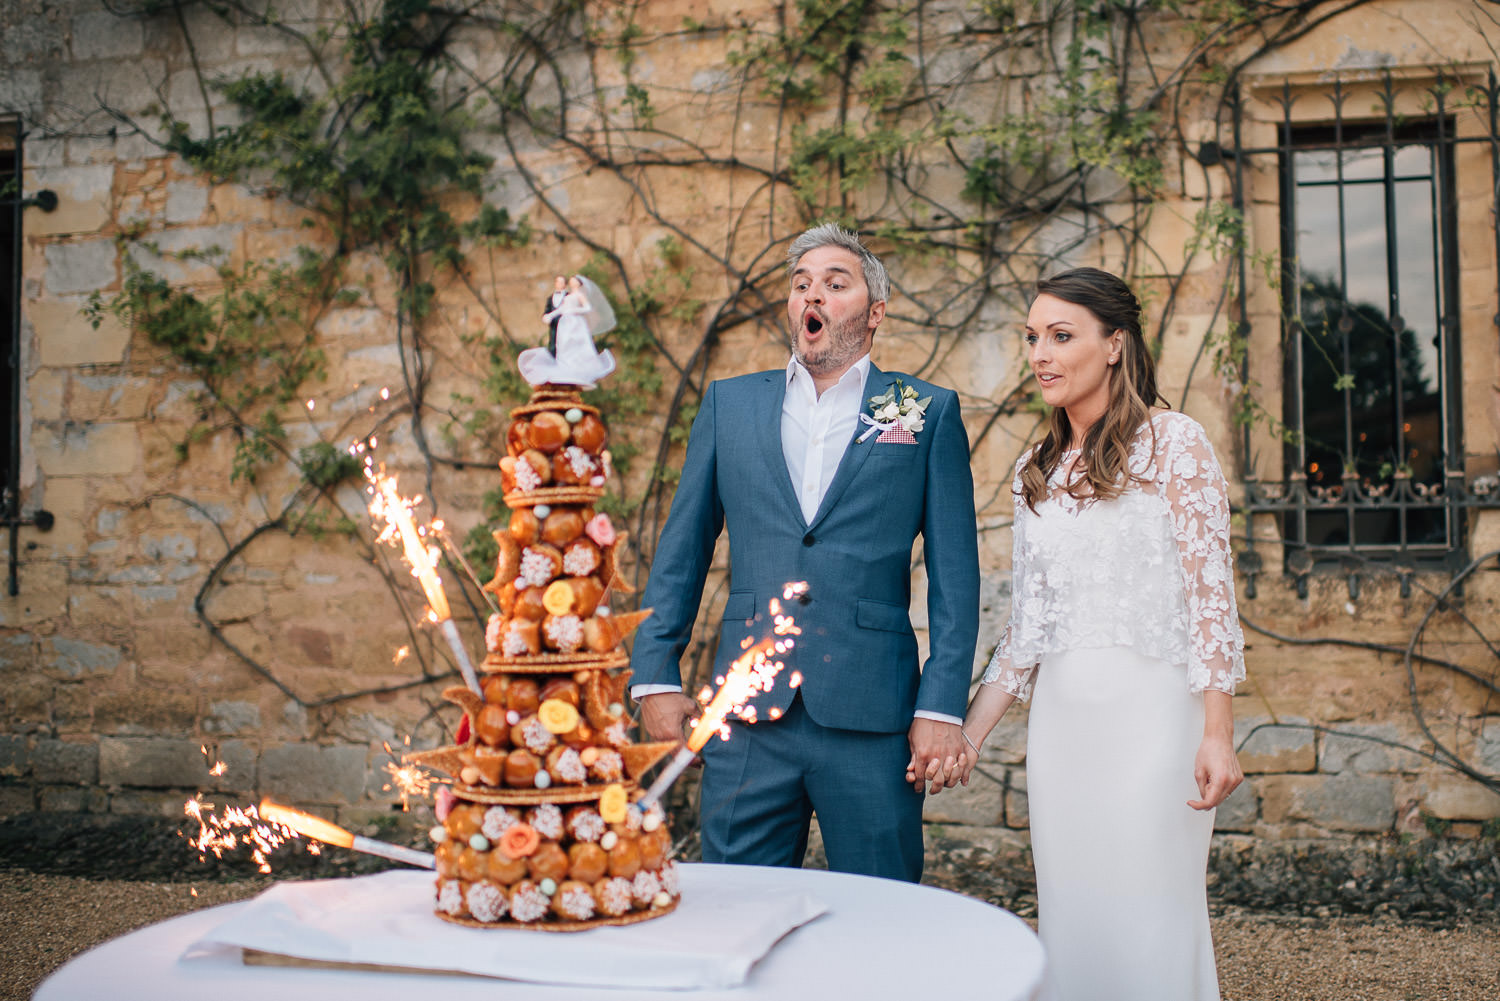 croq en bouche sparkler wedding cake in chateau de la bourlie wedding by french destination wedding photographer the shannons photography